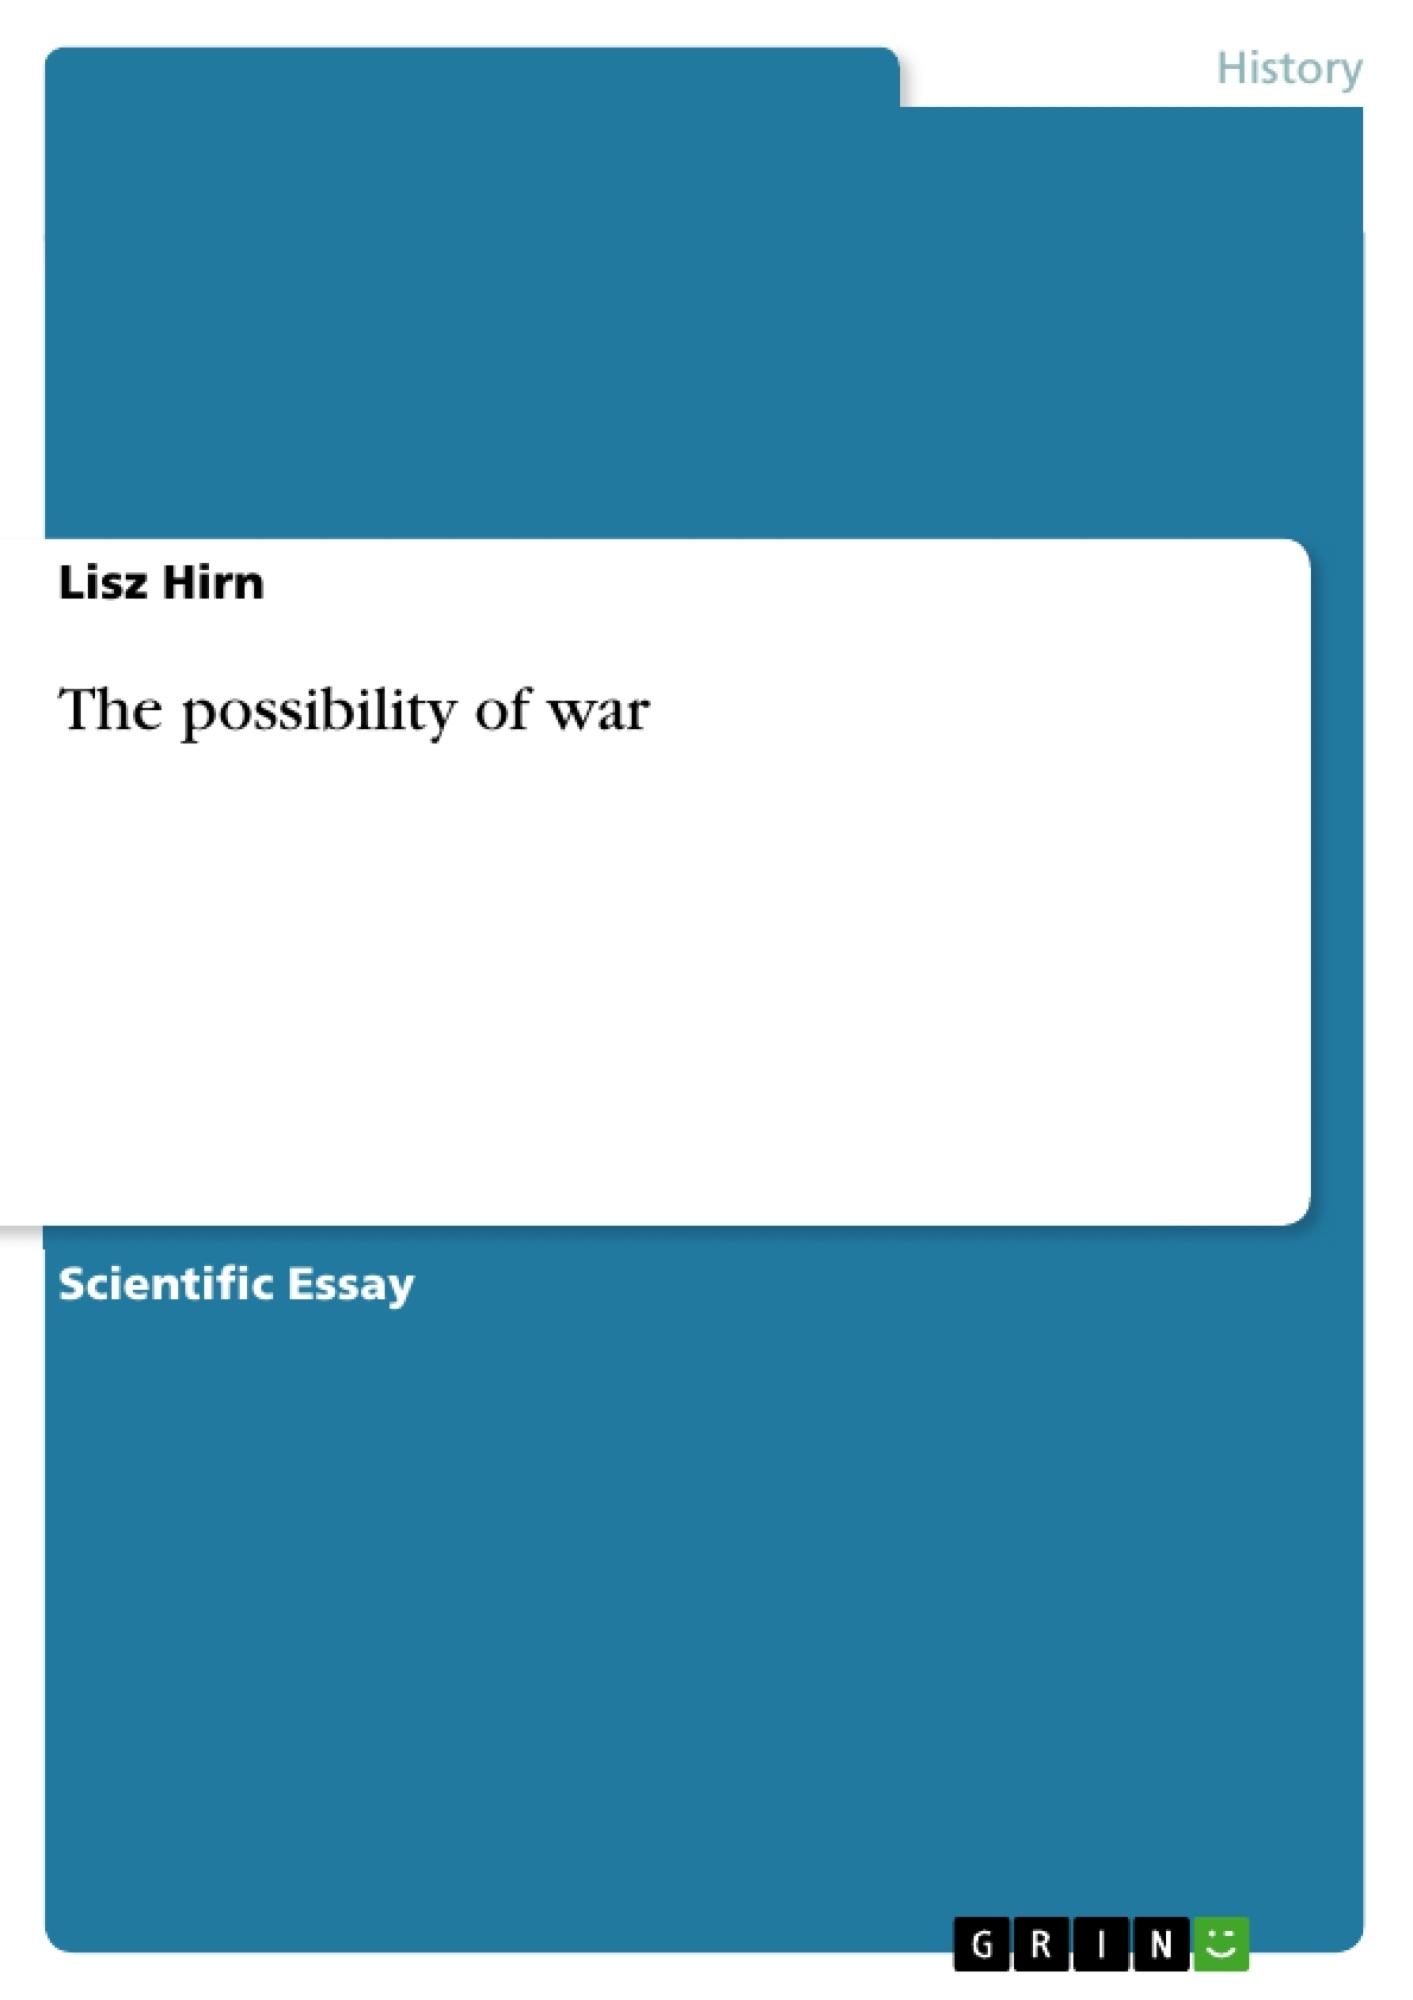 Title: The possibility of war